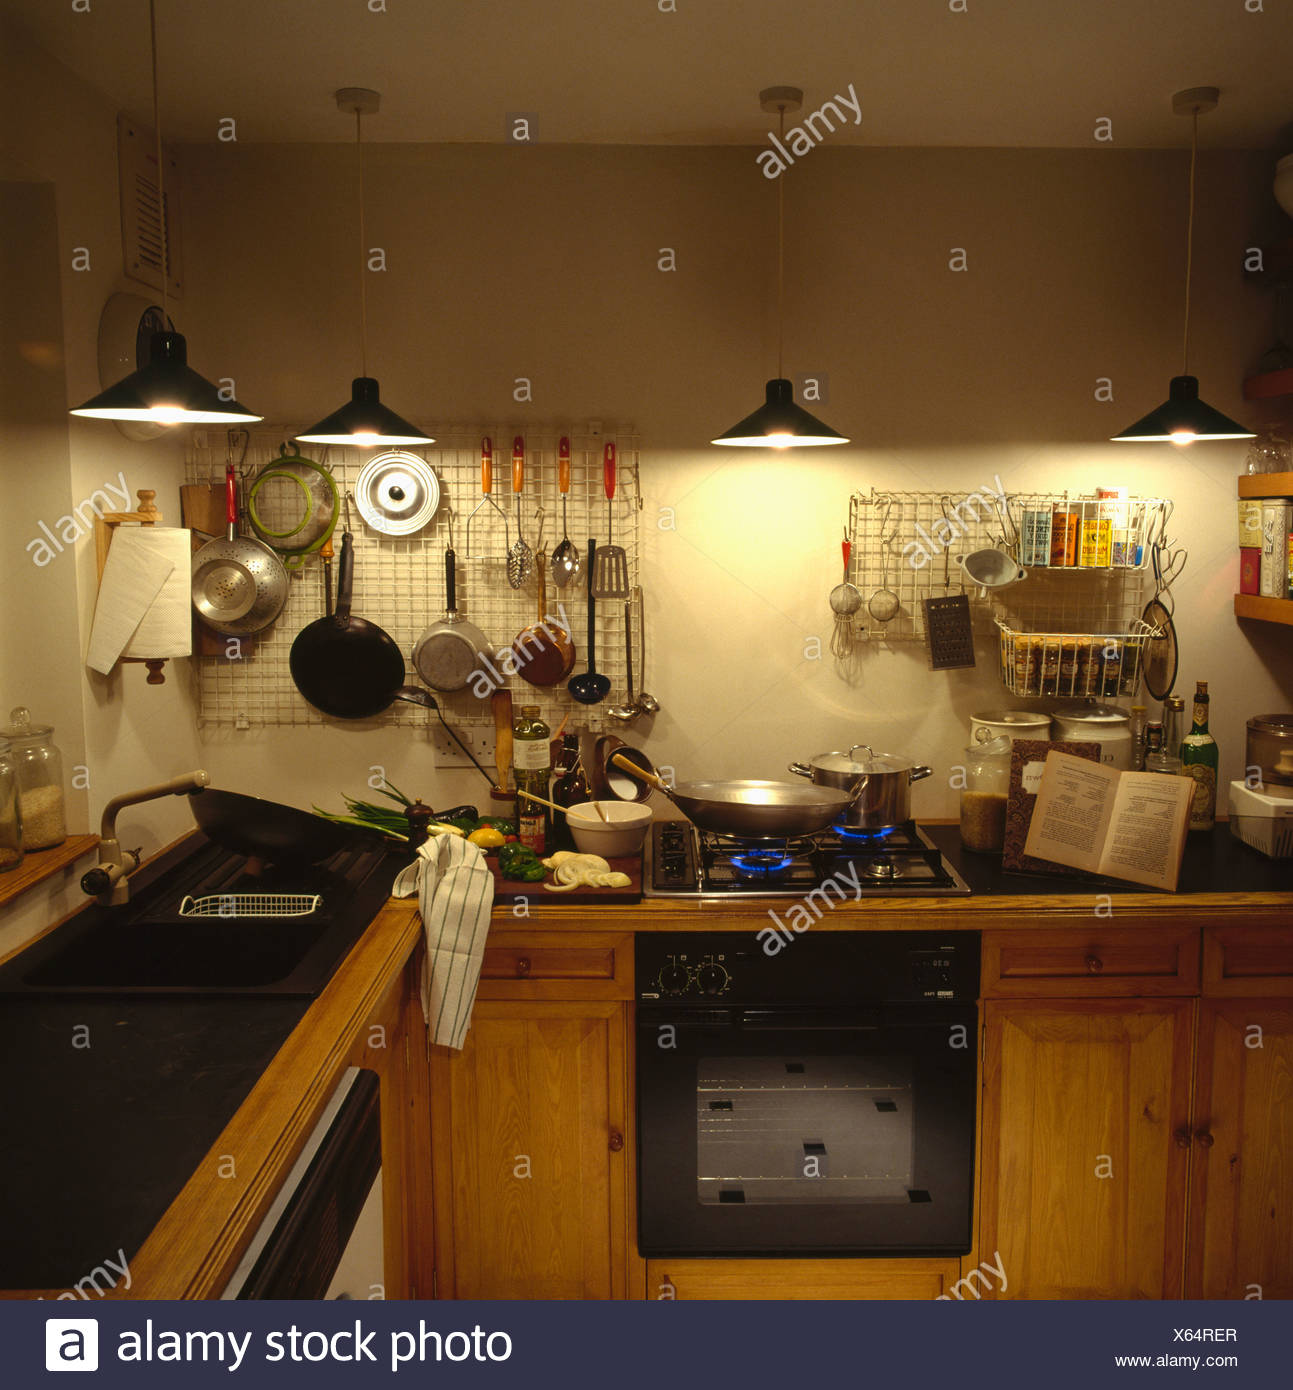 Pendant Lights Above Pans On Wire Wall Racks In Small Kitchen With Oven In Fitted Pine Units Stock Photo Alamy